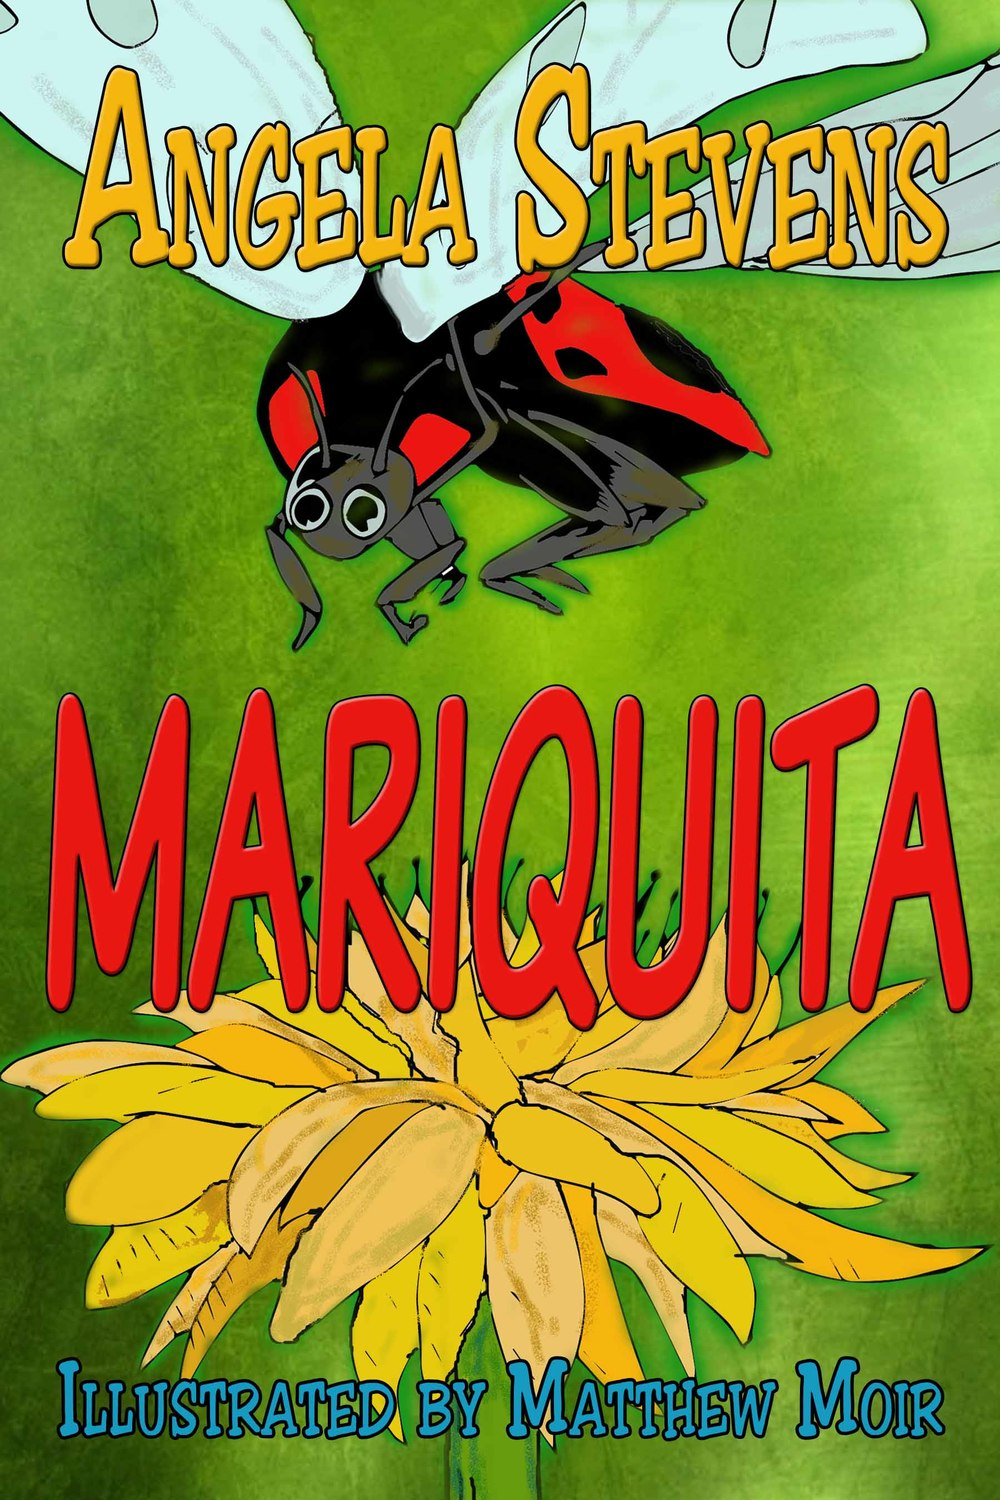 Mariquita cover 2 copy.jpg